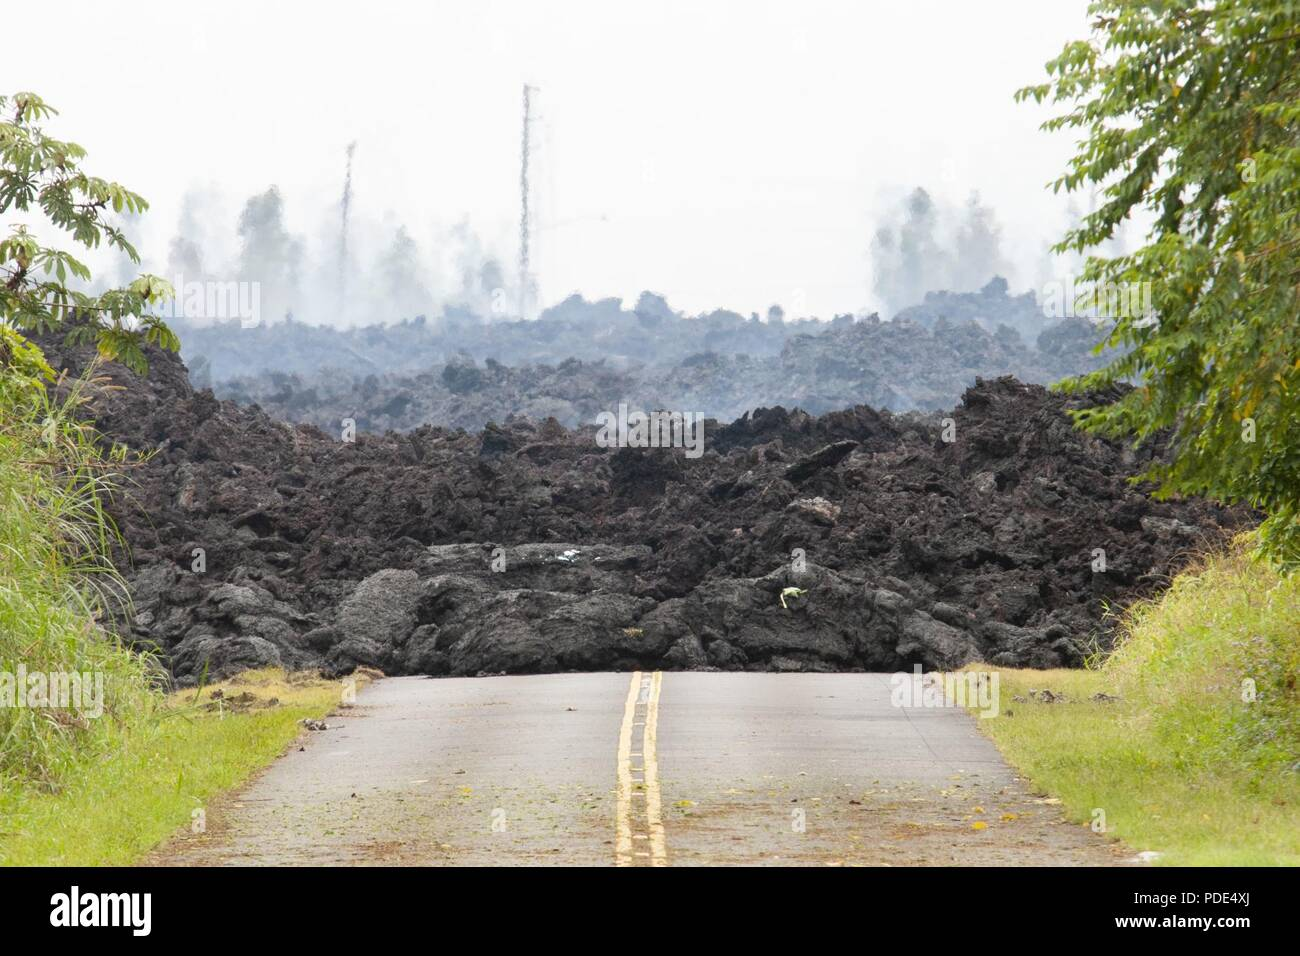 A lava roadblock covers a residential road May 12, 2018, at Leilani Estates, Pahoa, Hawaii. Members of the Hawaii Army and Air National Guard have been activated in order to assemble Task Force Hawaii, which is providing traffic assistance, presence patrols and supporting local government agencies with the volcano outbreak relief effort. - Stock Image